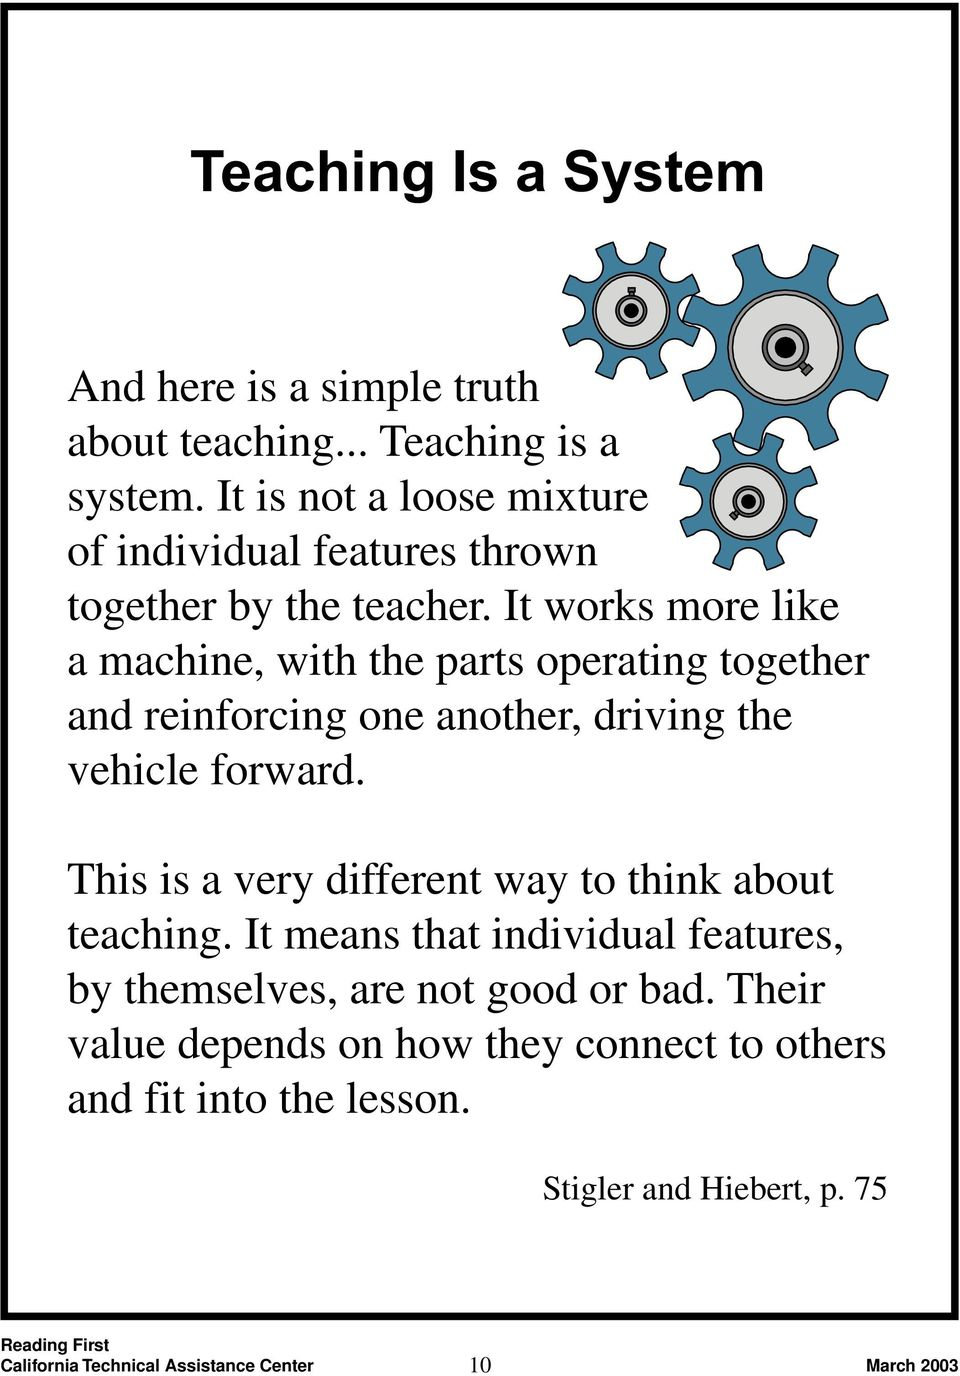 It works more like a machine, with the parts operating together and reinforcing one another, driving the vehicle forward.